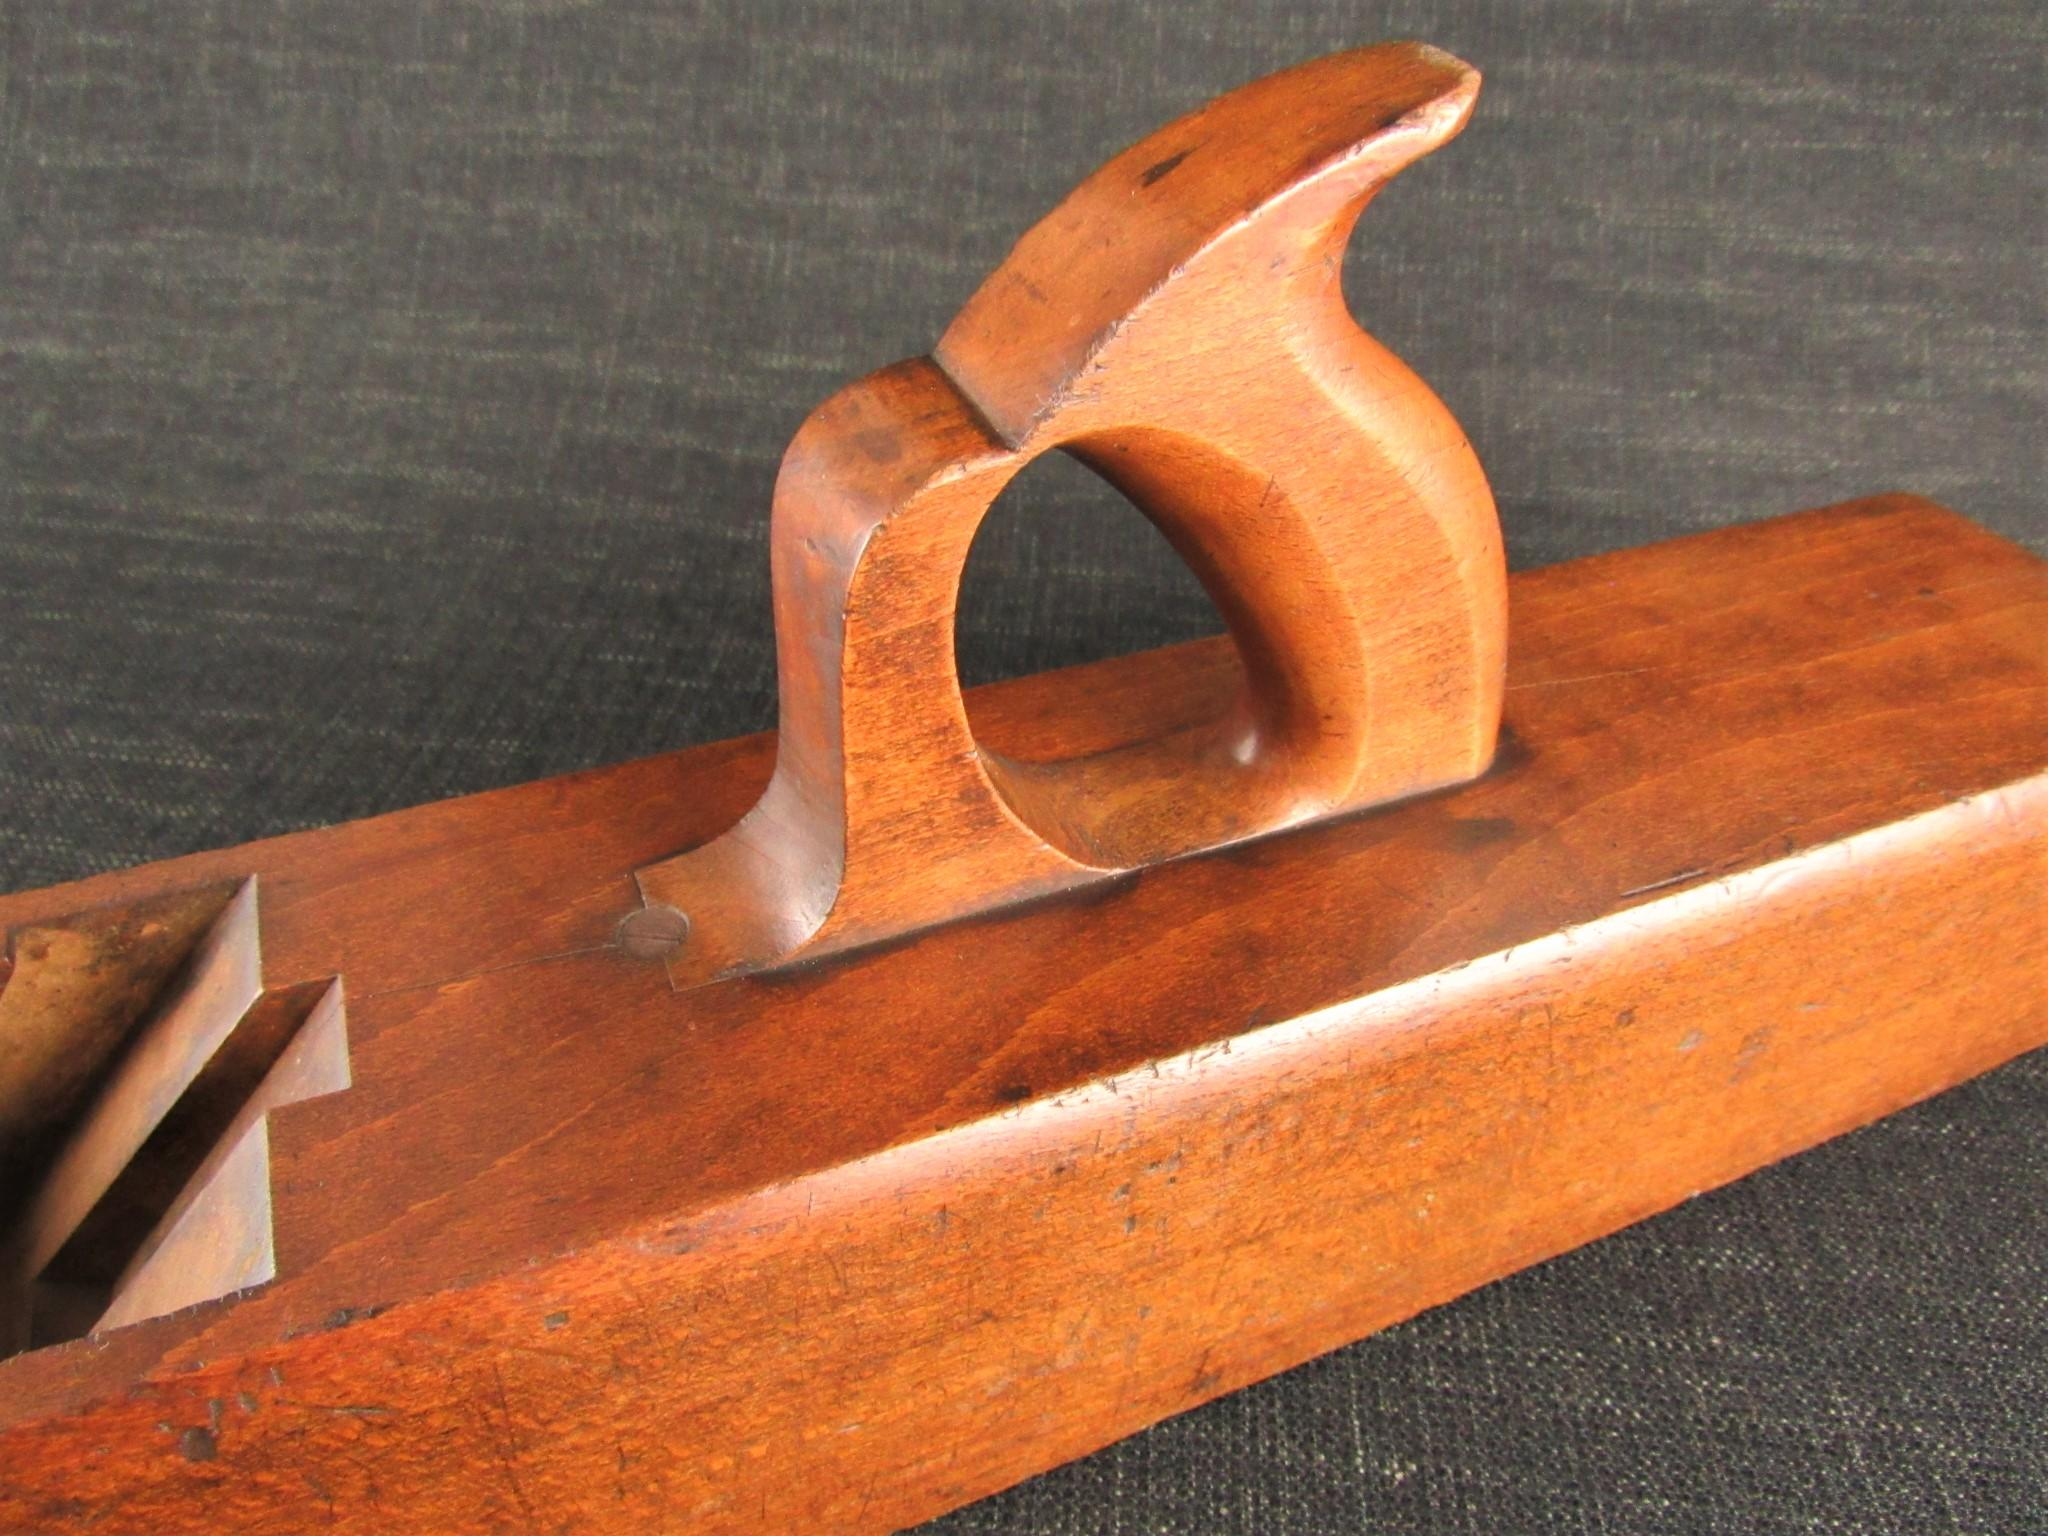 Antique NELSON Jointer Plane with Offset Handle - 26 inch